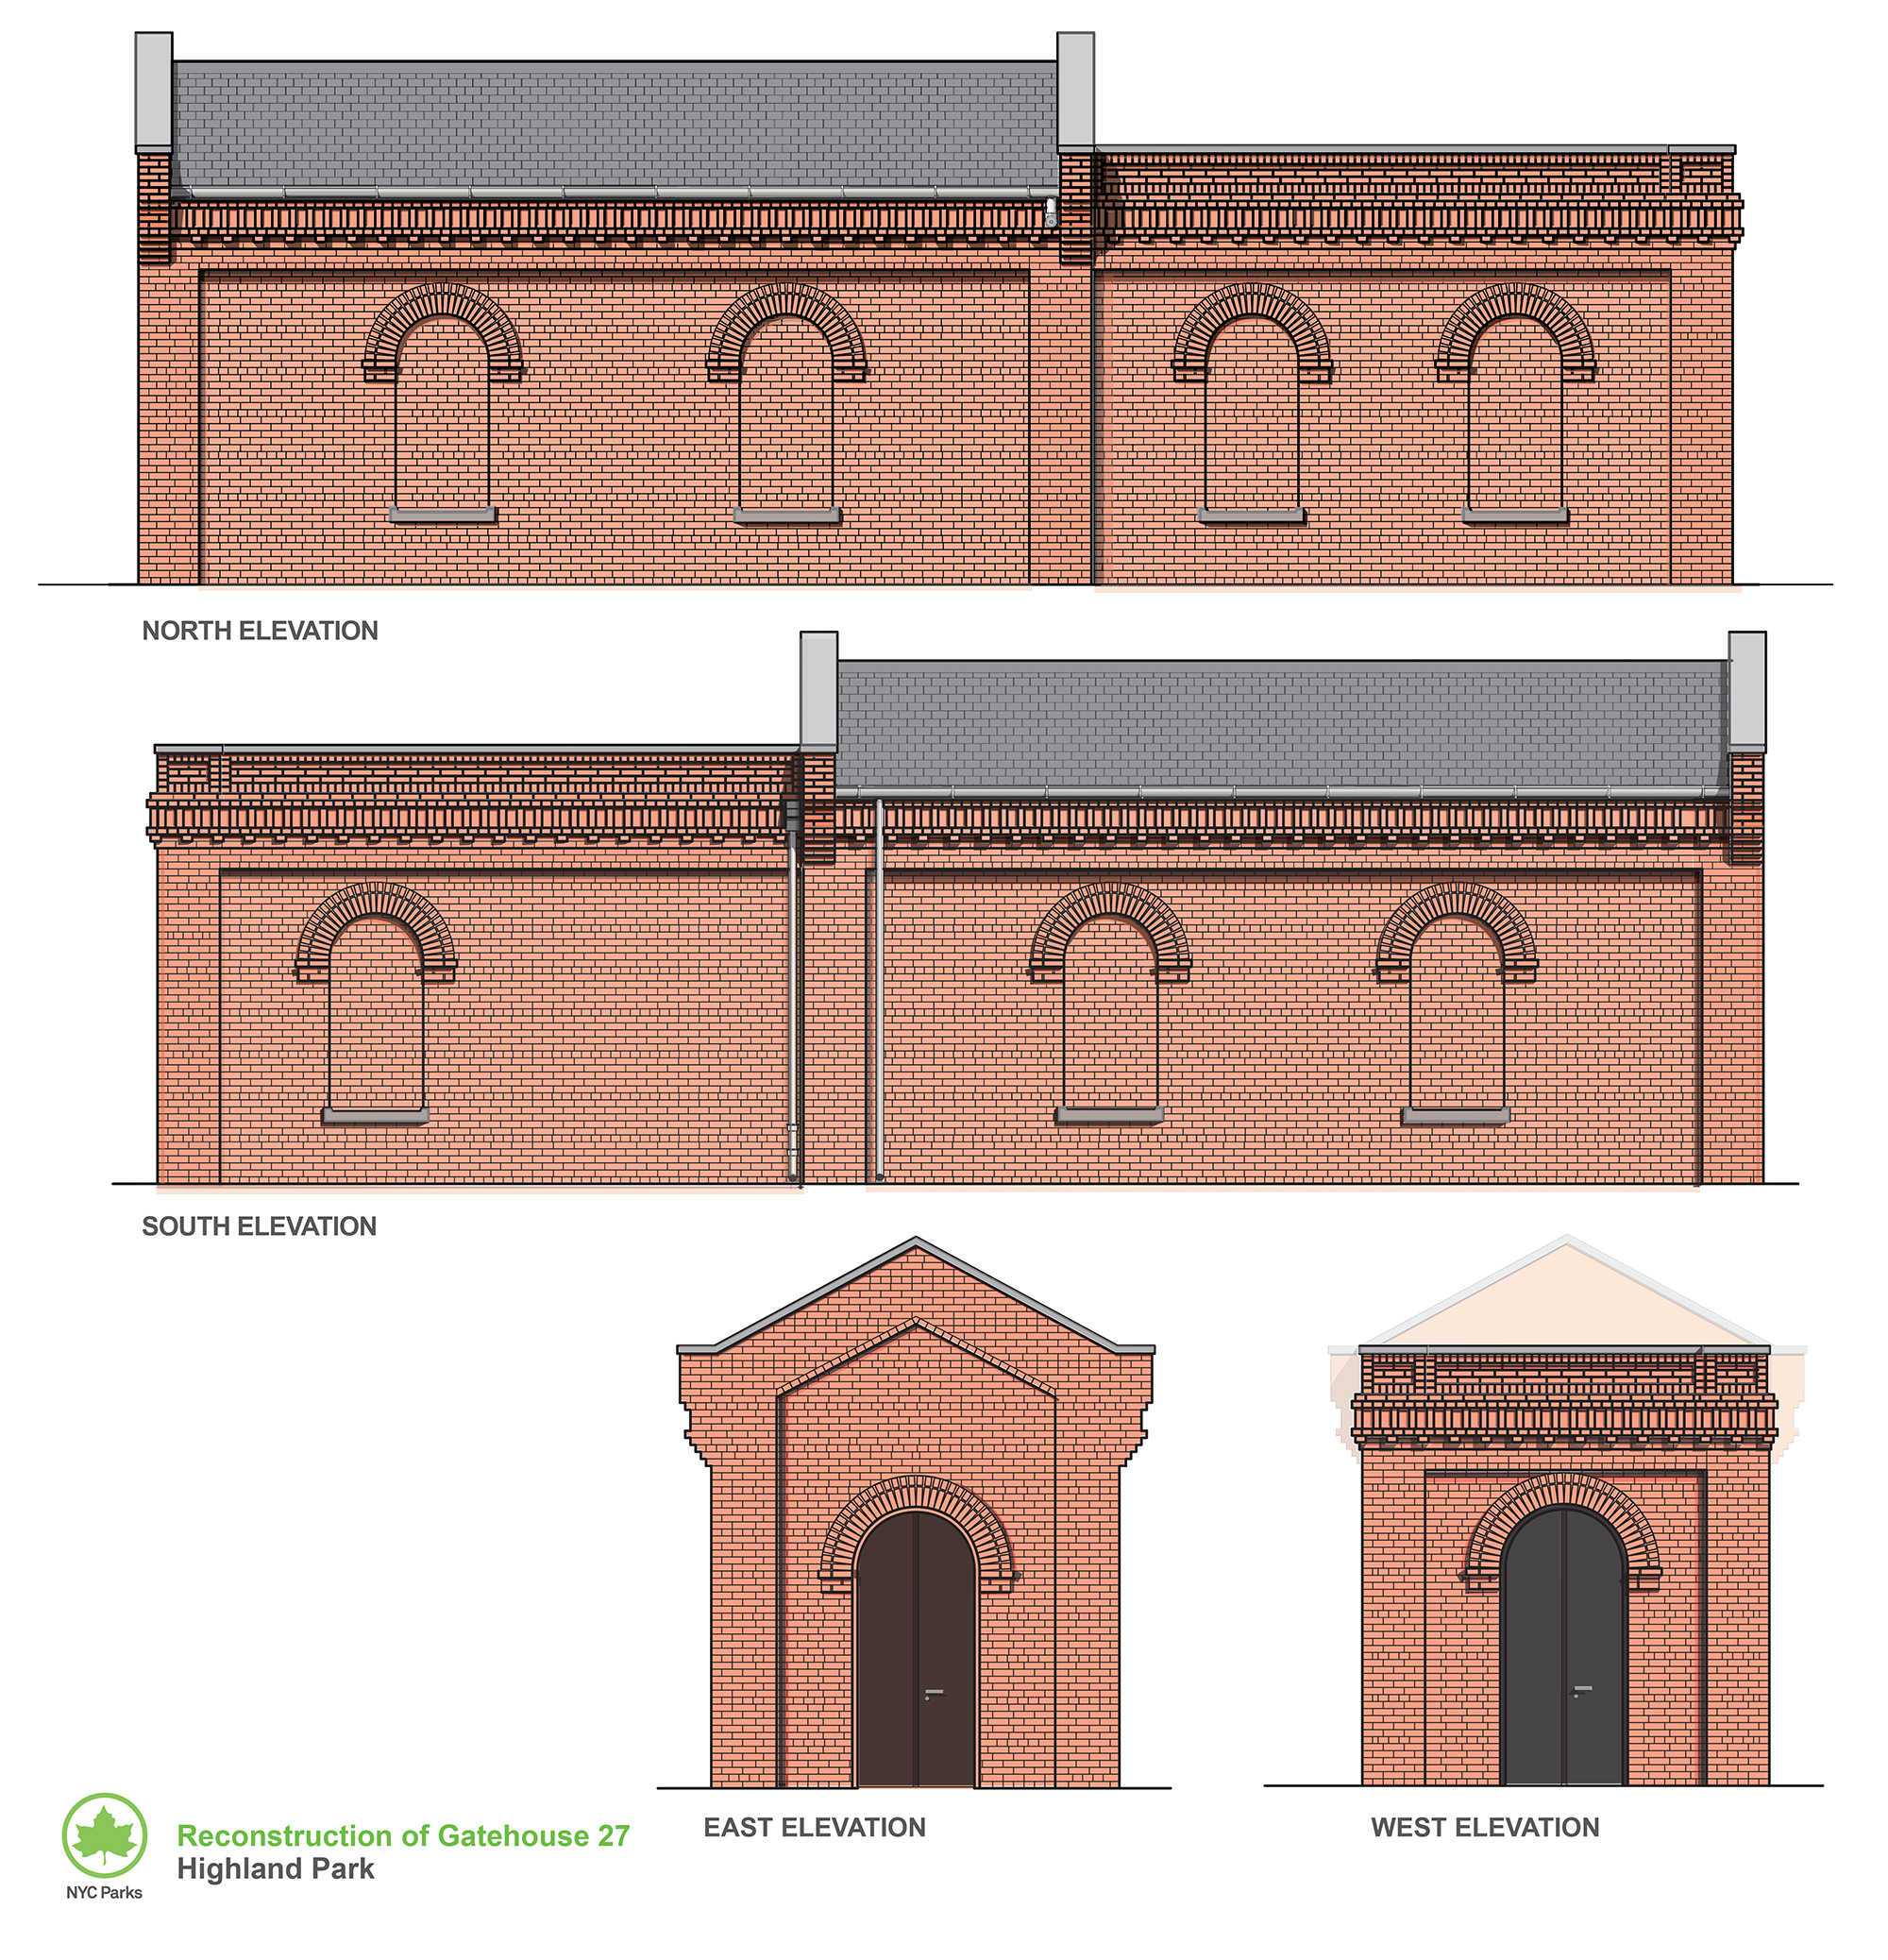 Design of Highland Park Ridgewood Reservoir Gatehouse 27 Reconstruction